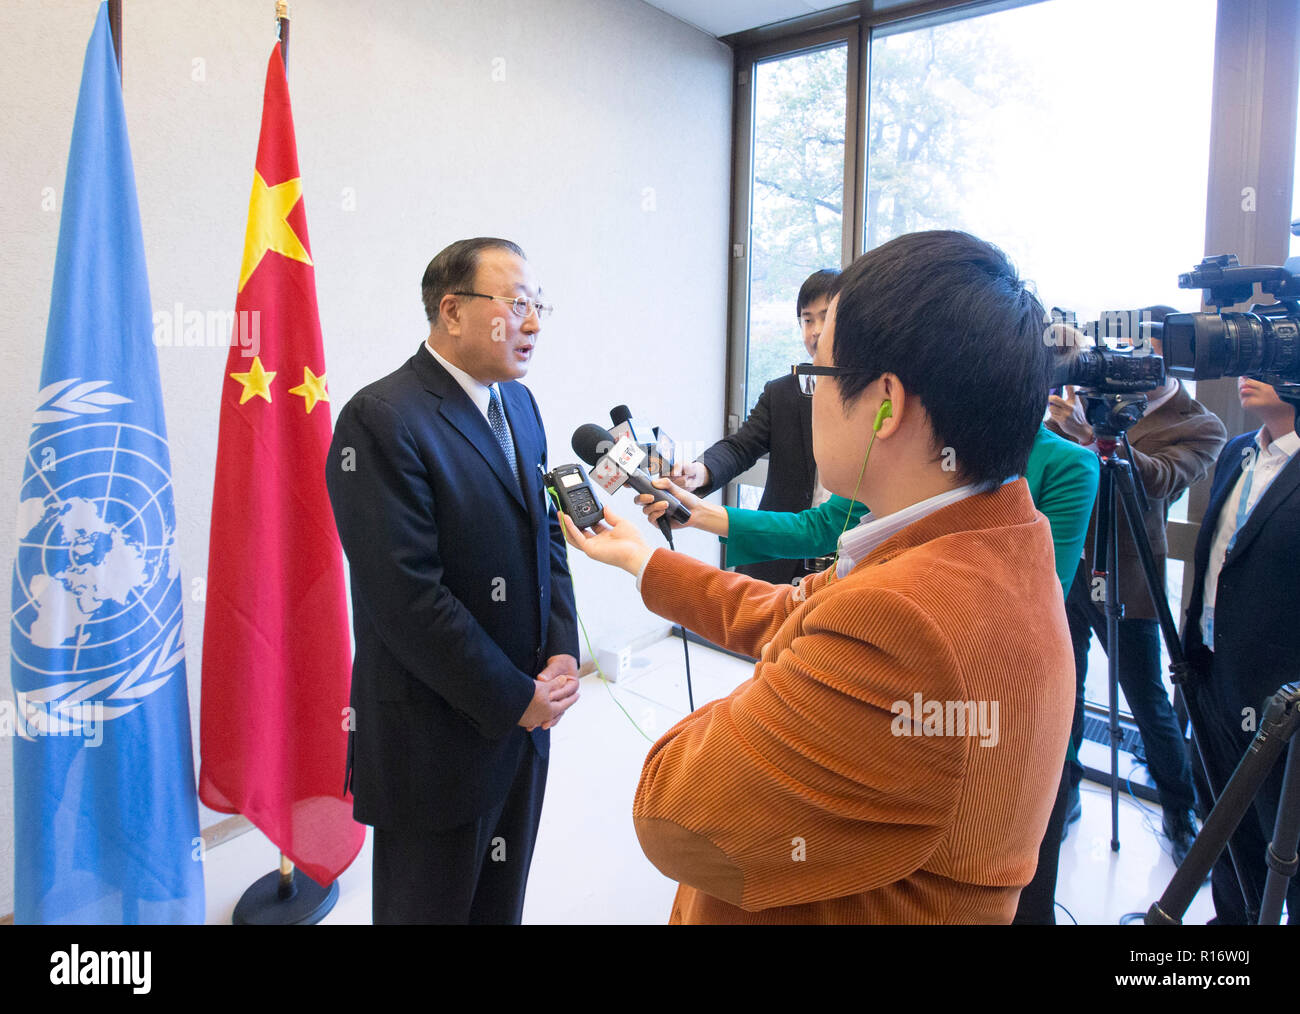 Geneva, Switzerland. 9th Nov, 2018. Zhang Jun (L), deputy head of the Chinese government delegation and China's assistant foreign minister, speaks to reporters in Geneva, Switzerland, on Nov. 9, 2018. China has made real progress in the field of human rights promotion and the human rights development path with Chinese characteristics is completely correct, Zhang said here on Friday. Credit: Xu Jinquan/Xinhua/Alamy Live News - Stock Image